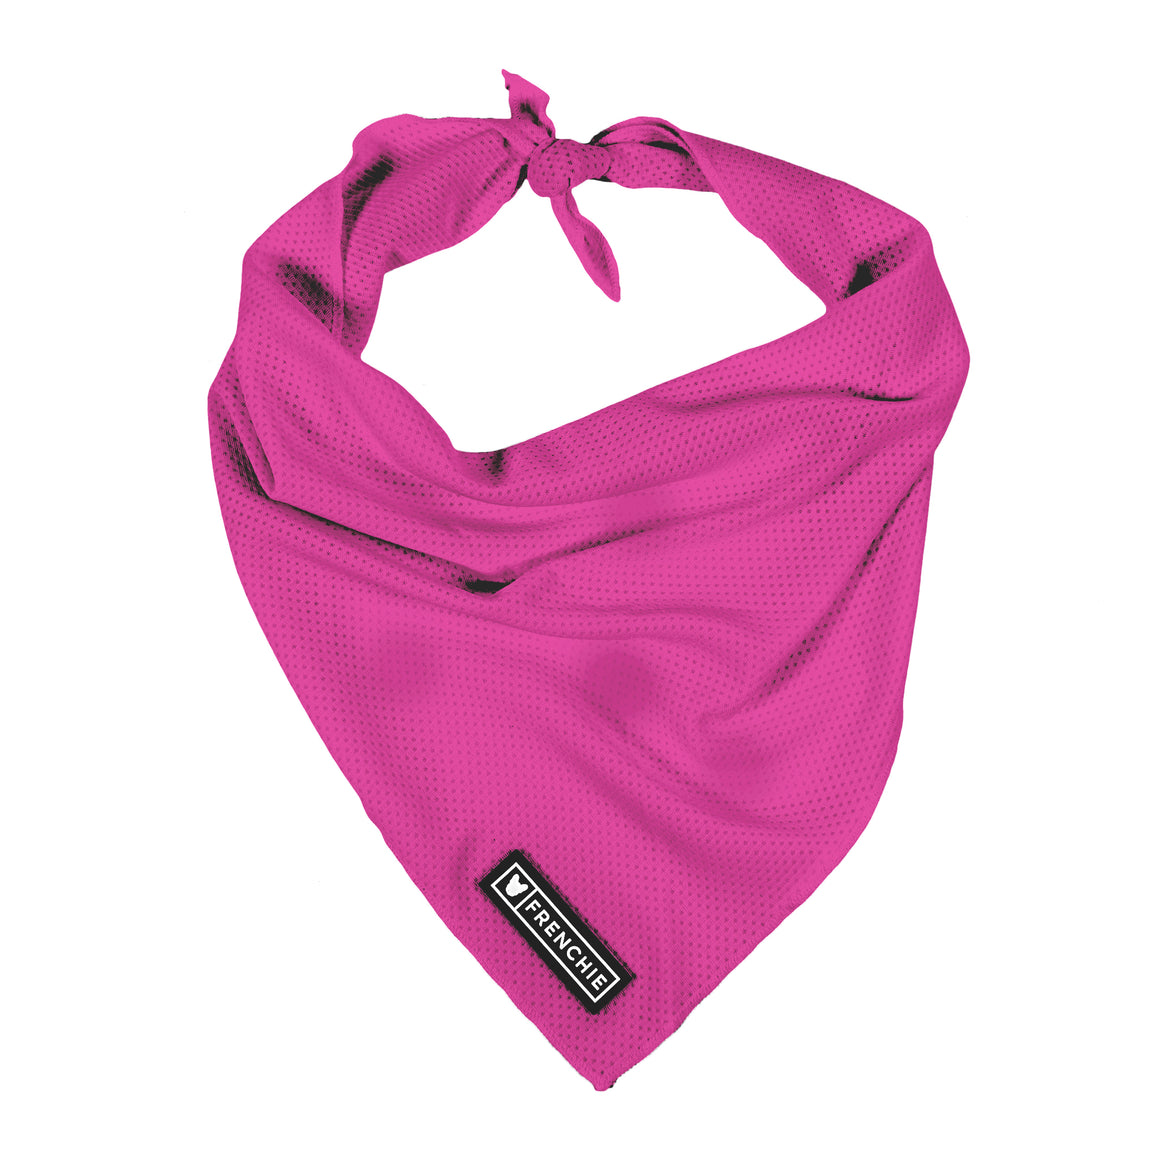 Frenchie Cooling Bandana- Neon Pink